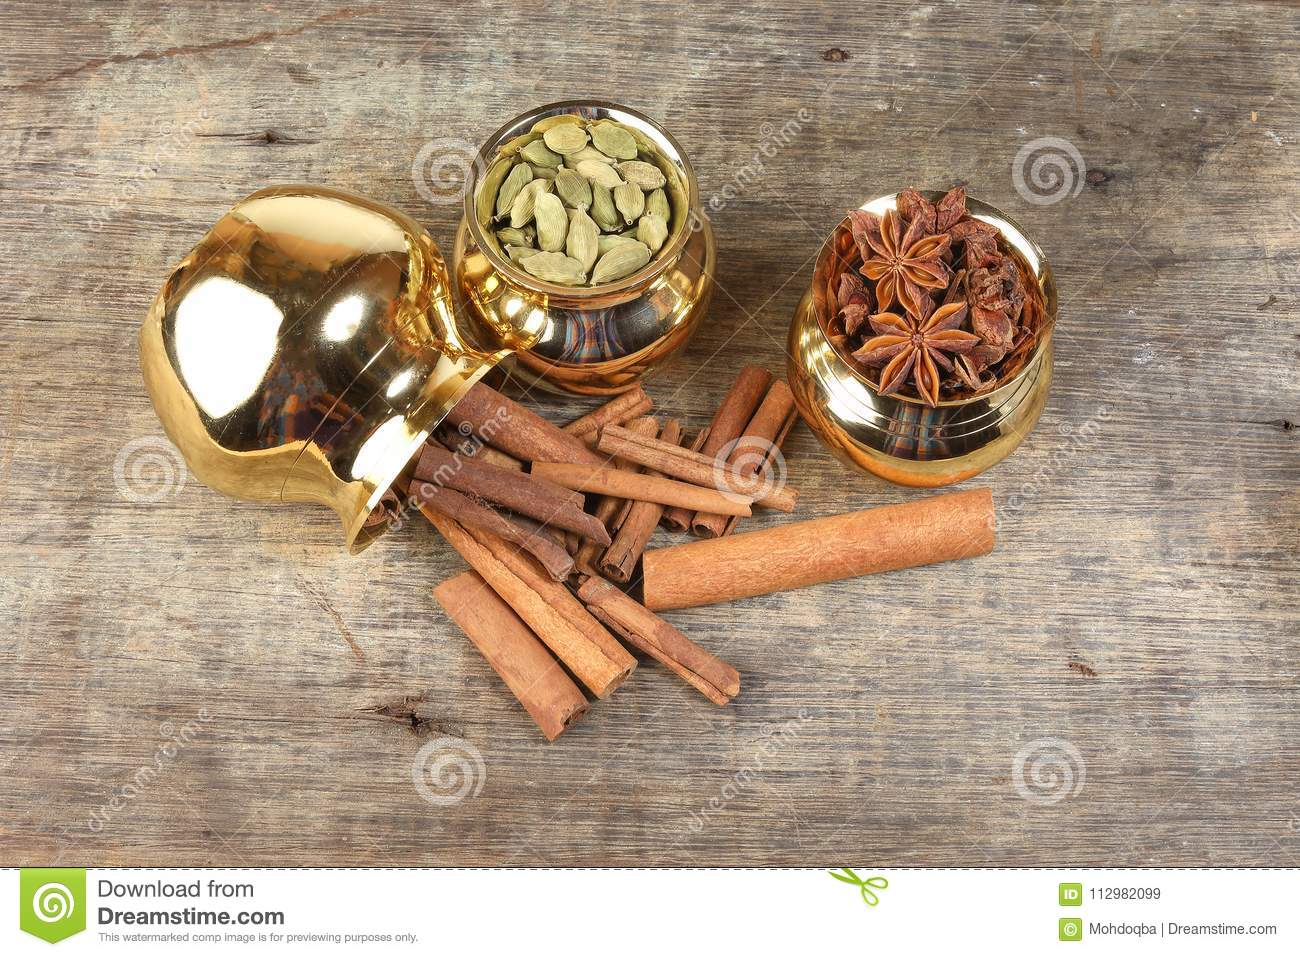 Mix spice in golden metal pot on rustic wood